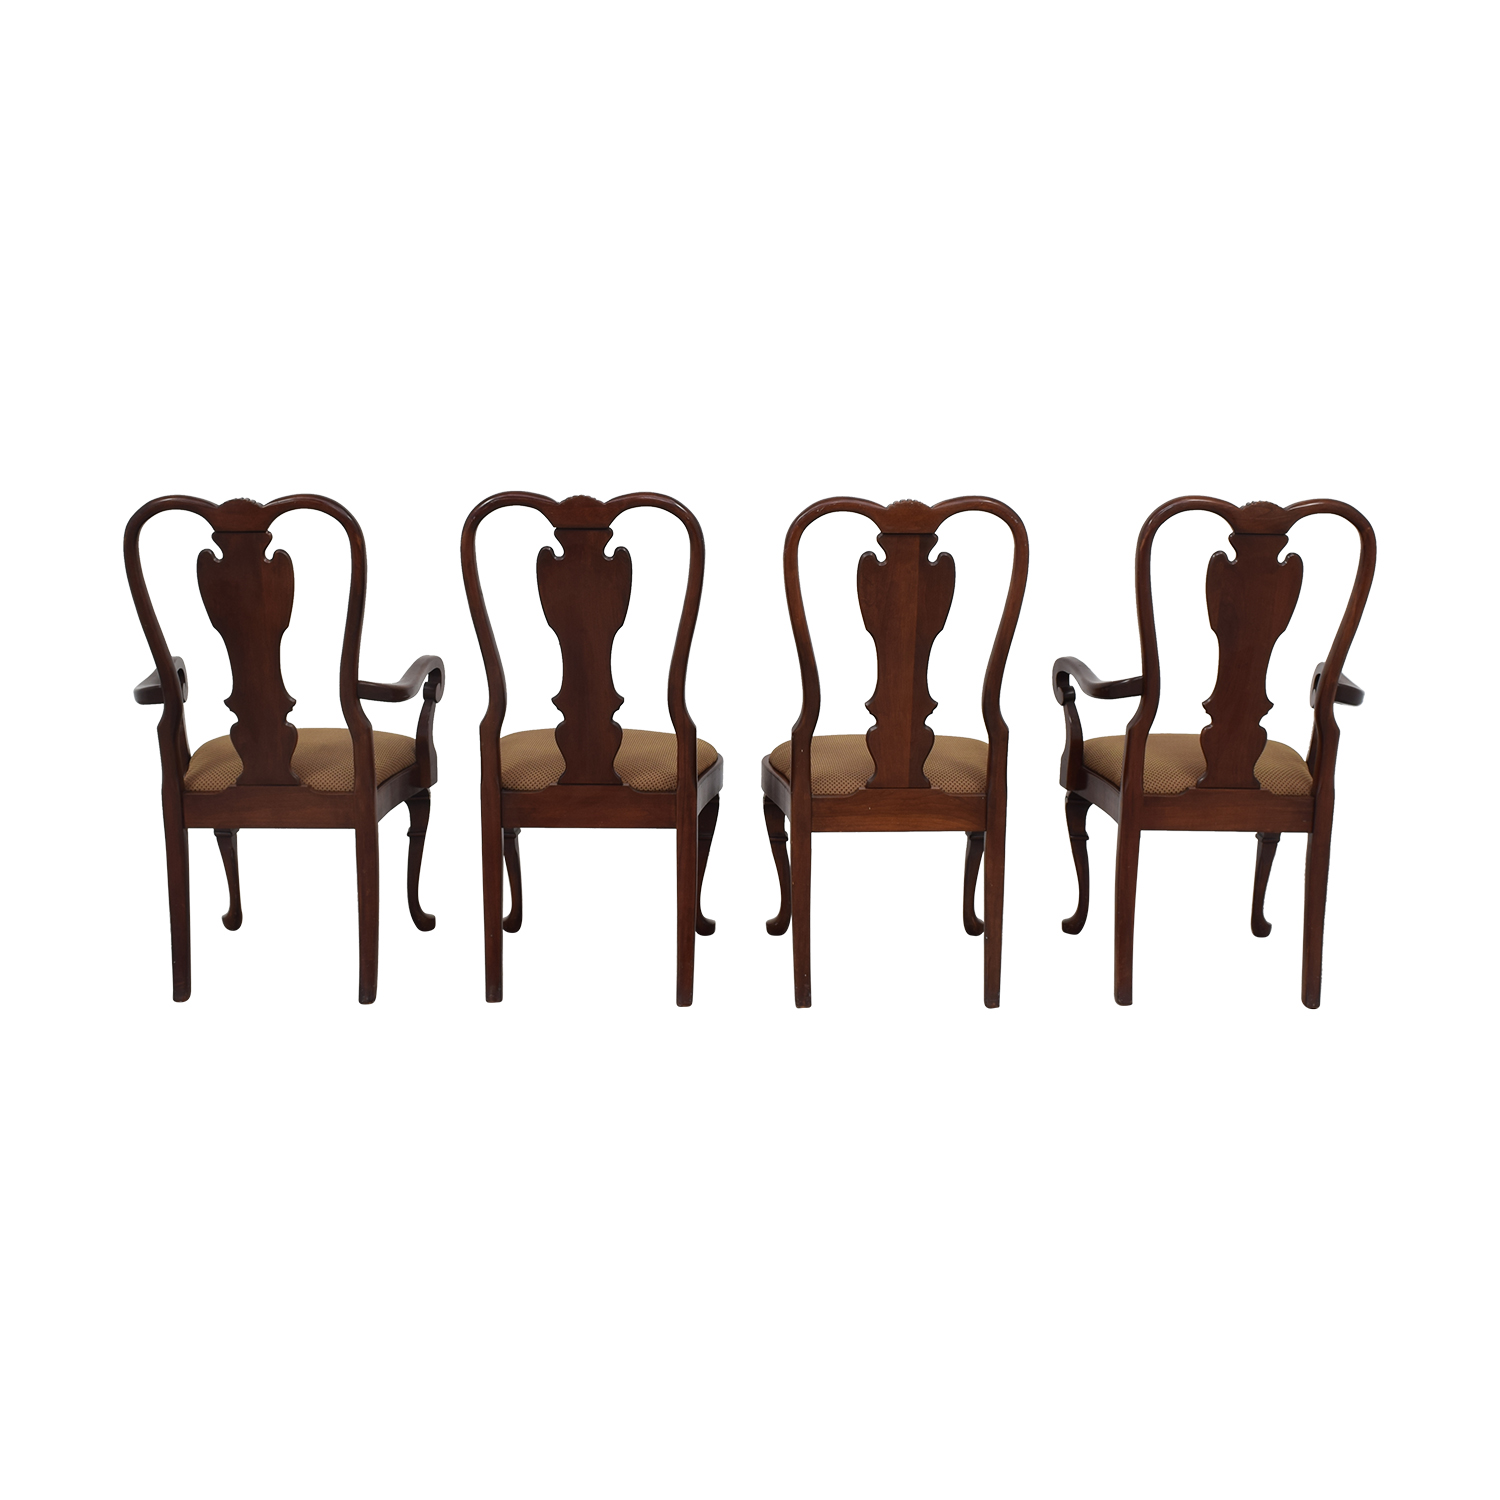 buy Pennsylvania House Dining Chairs Pennsylvania House Dining Chairs